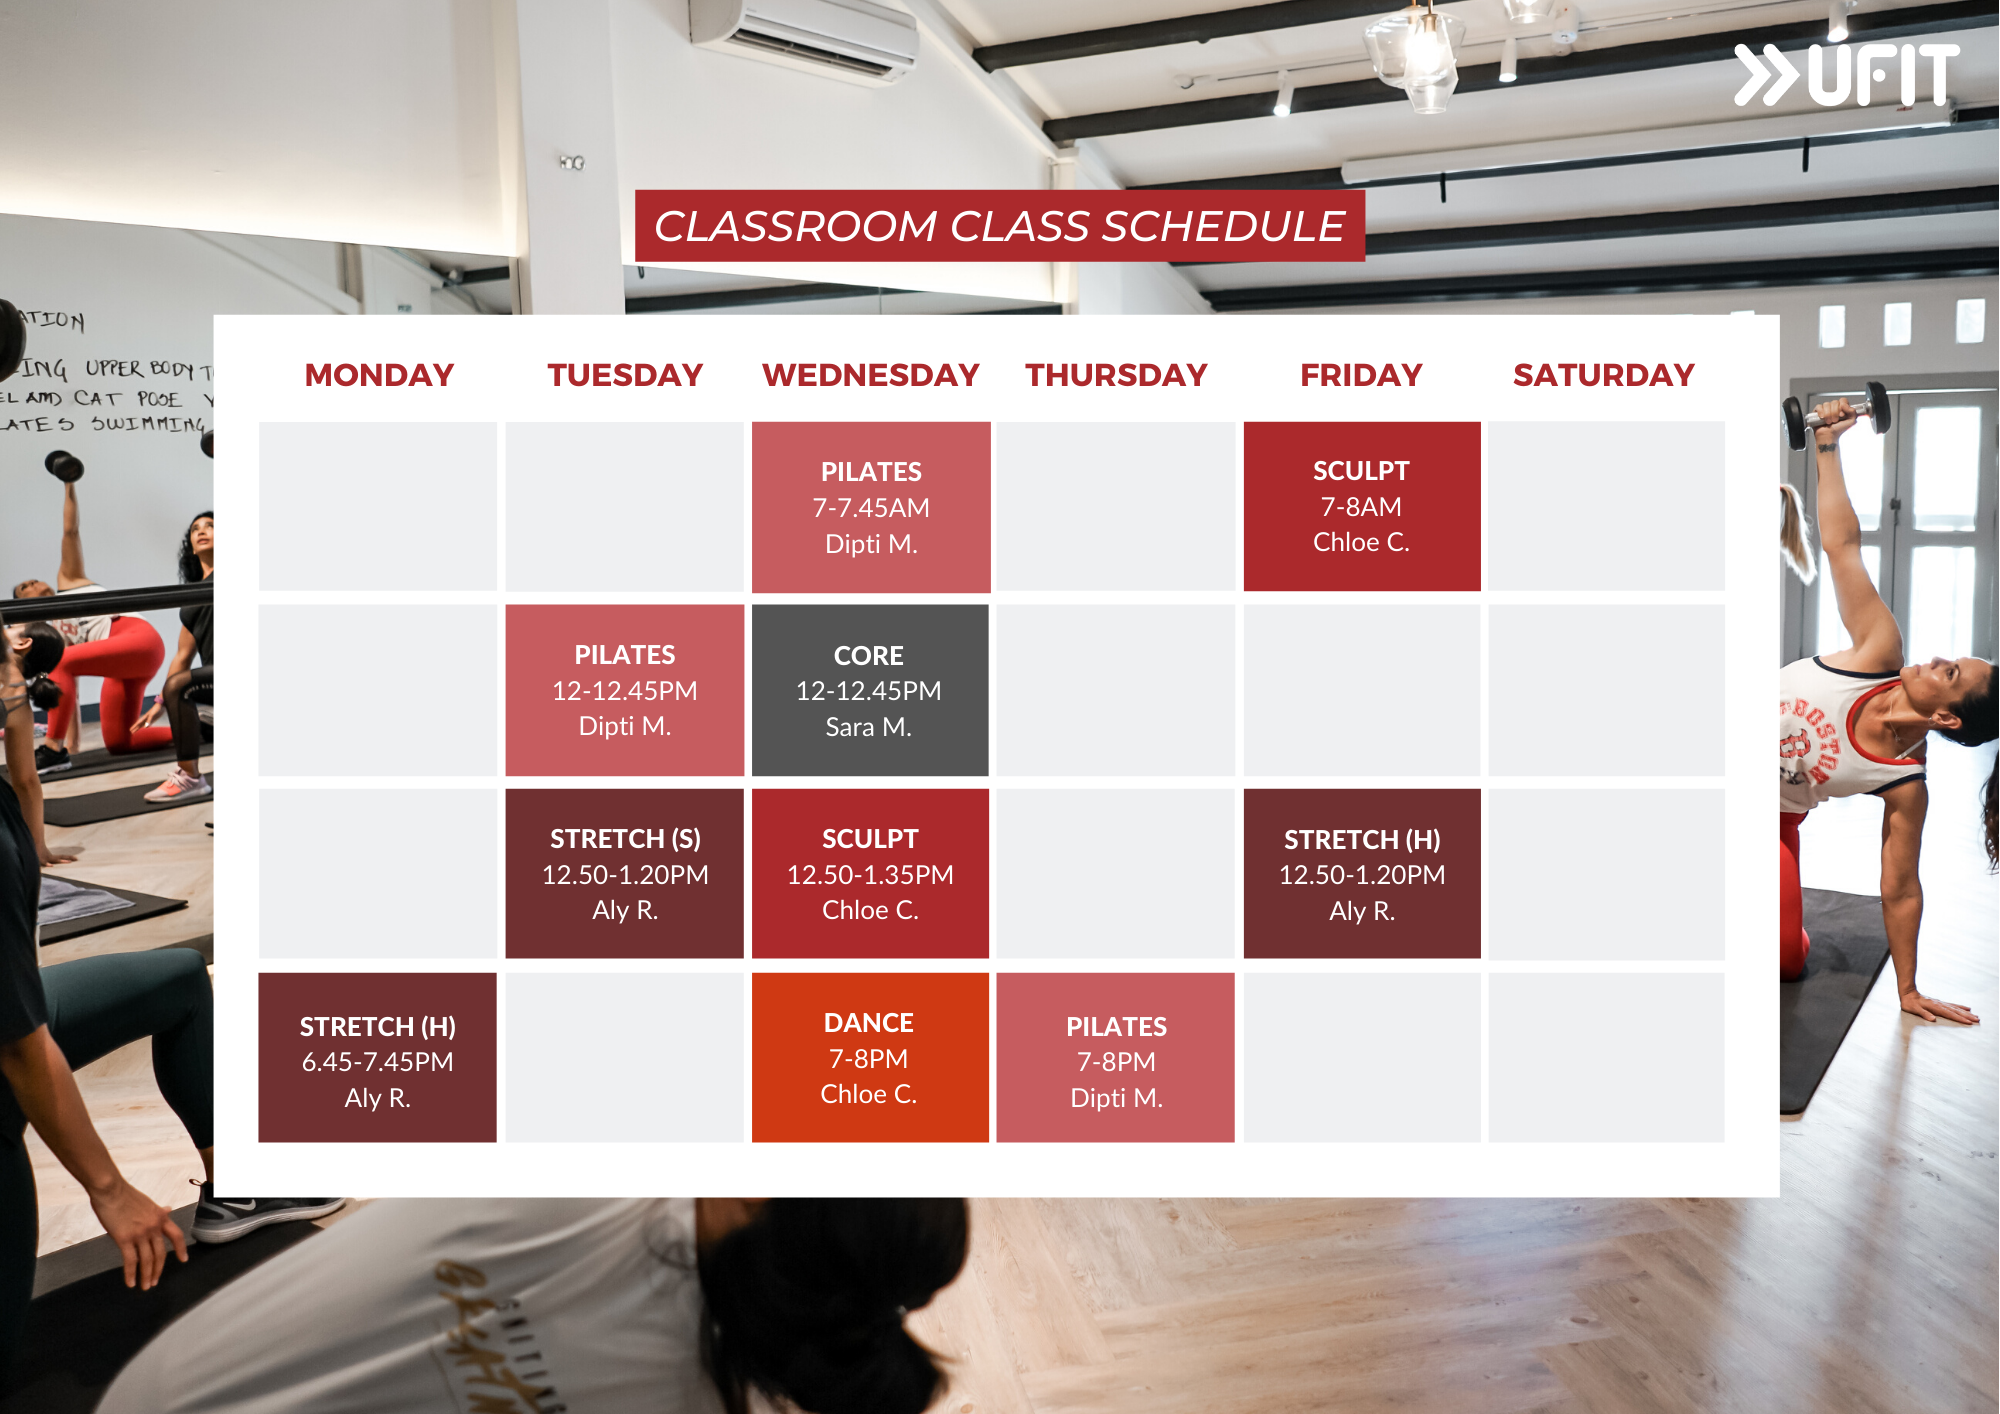 UFIT Classroom Group Fitness Class Schedule